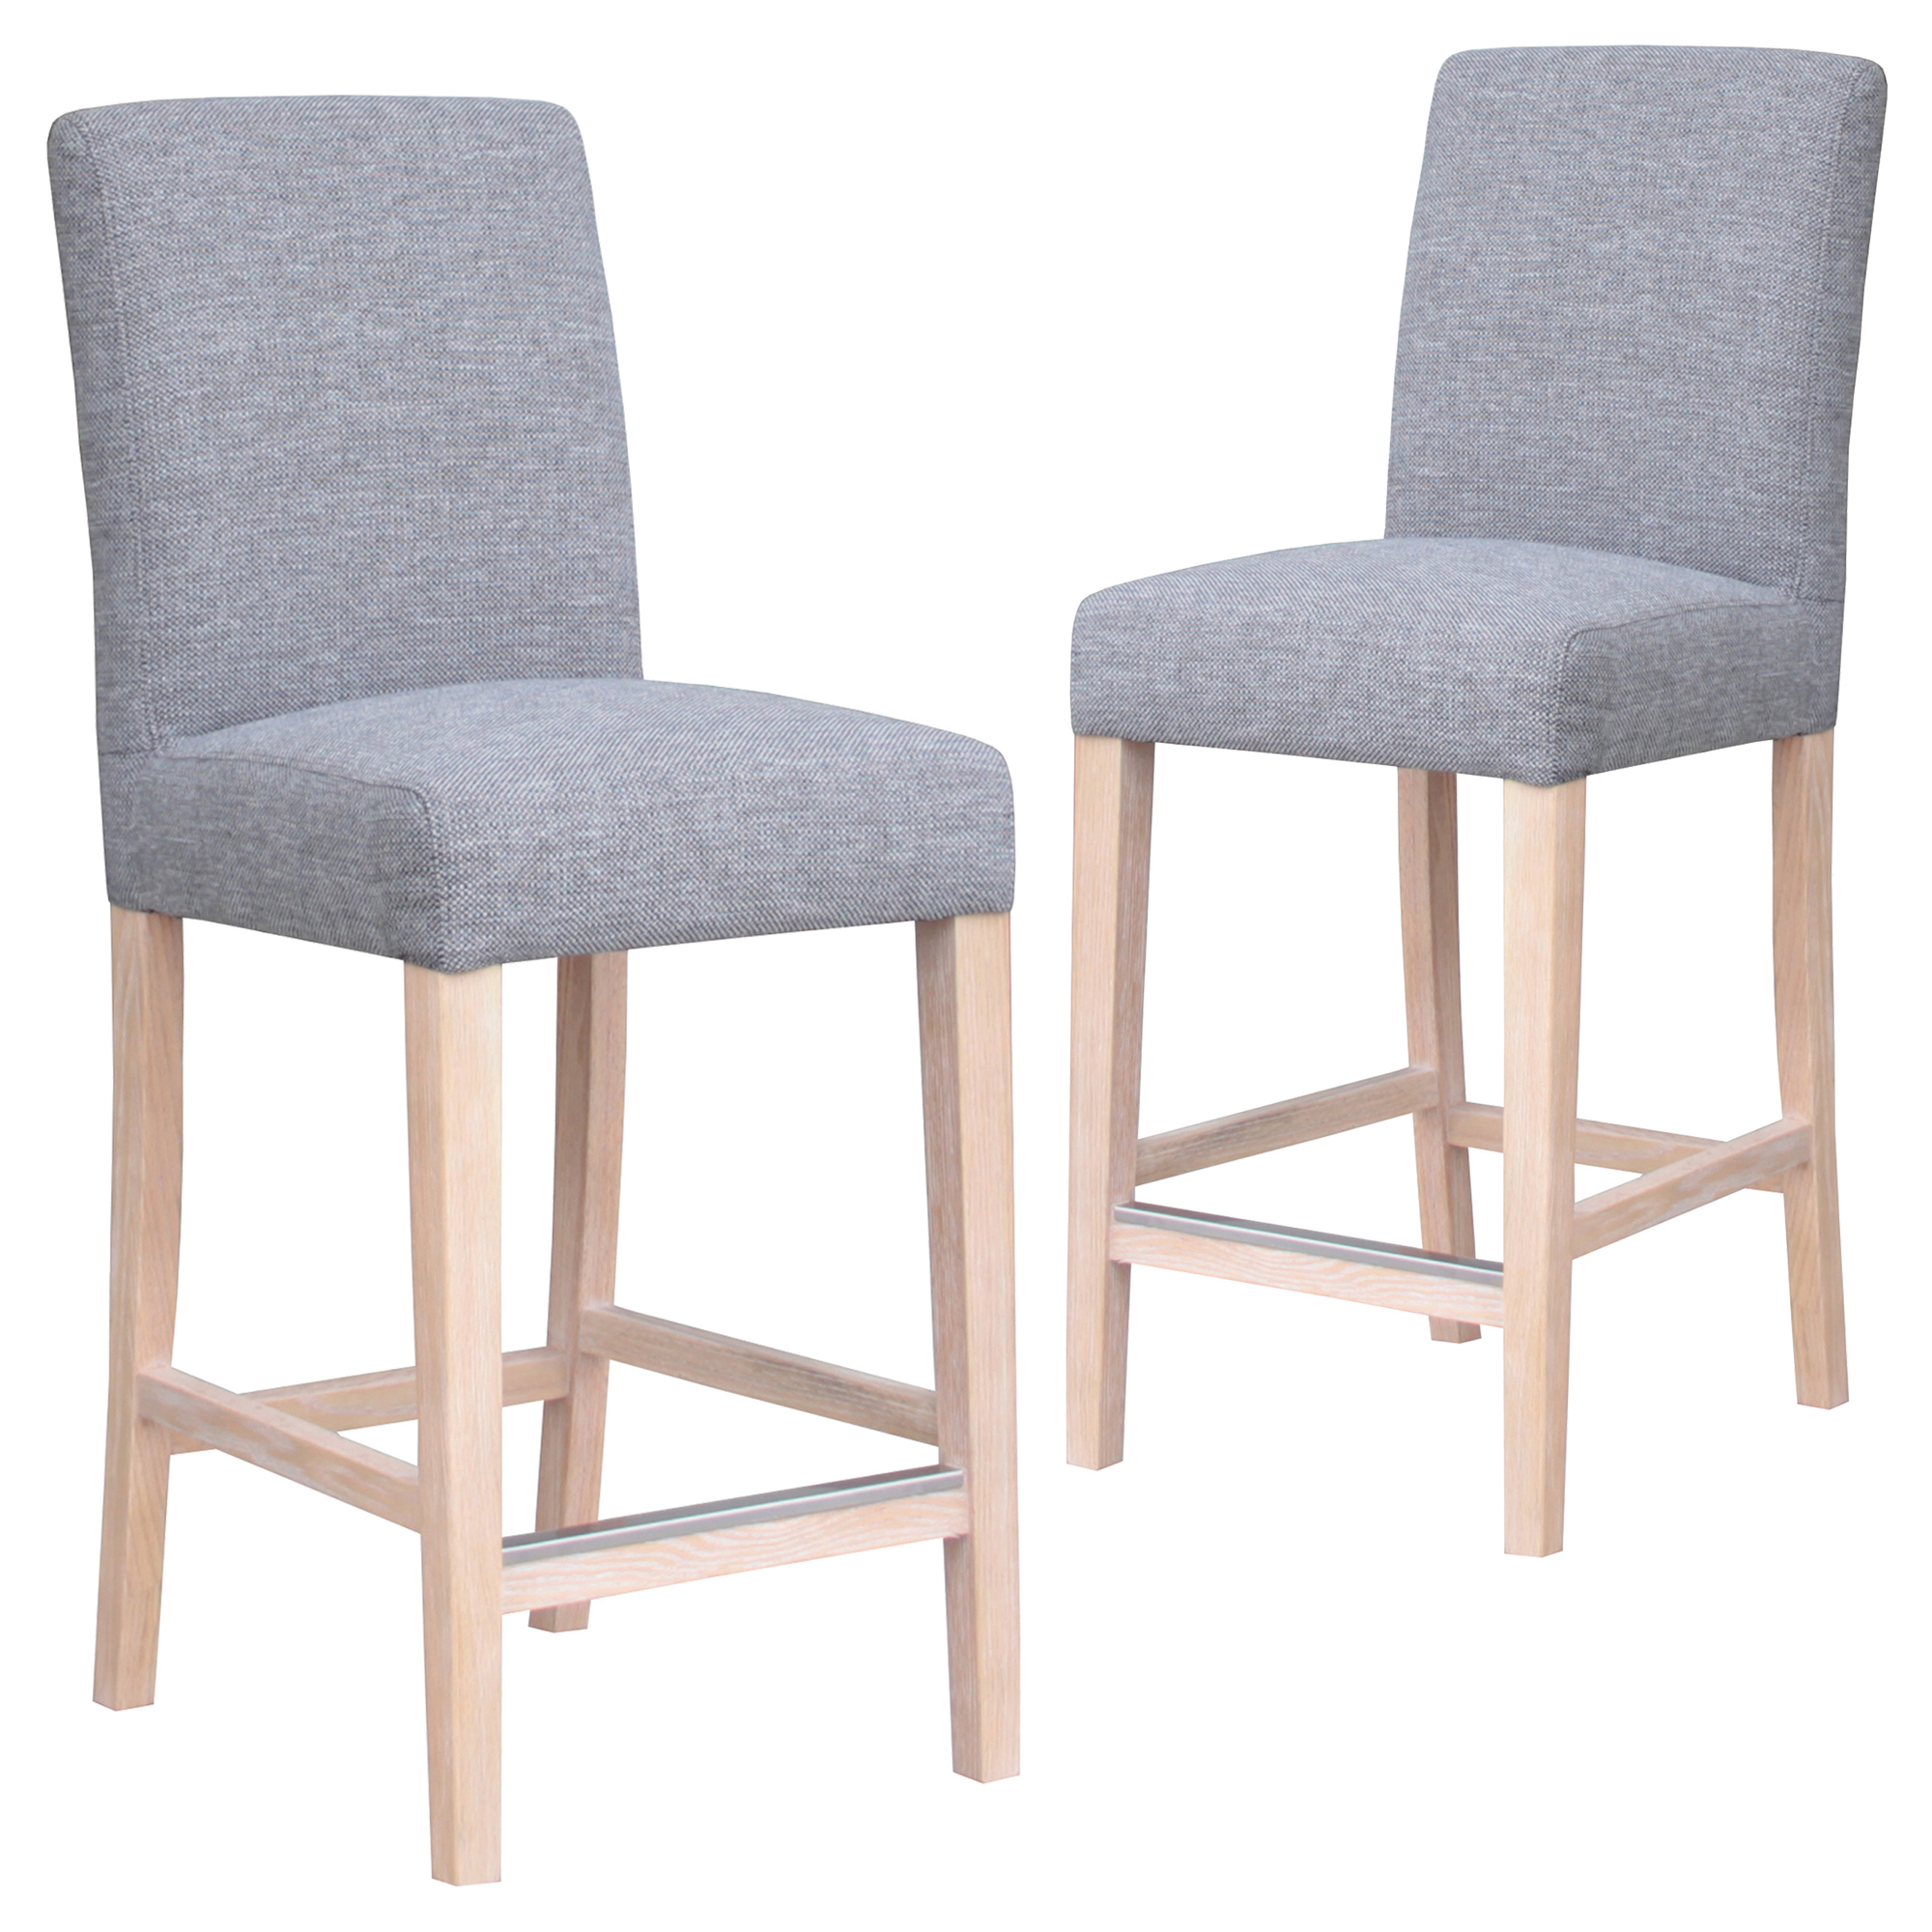 patrofi patio stools co stool walmart grey bar upholstered veloclub